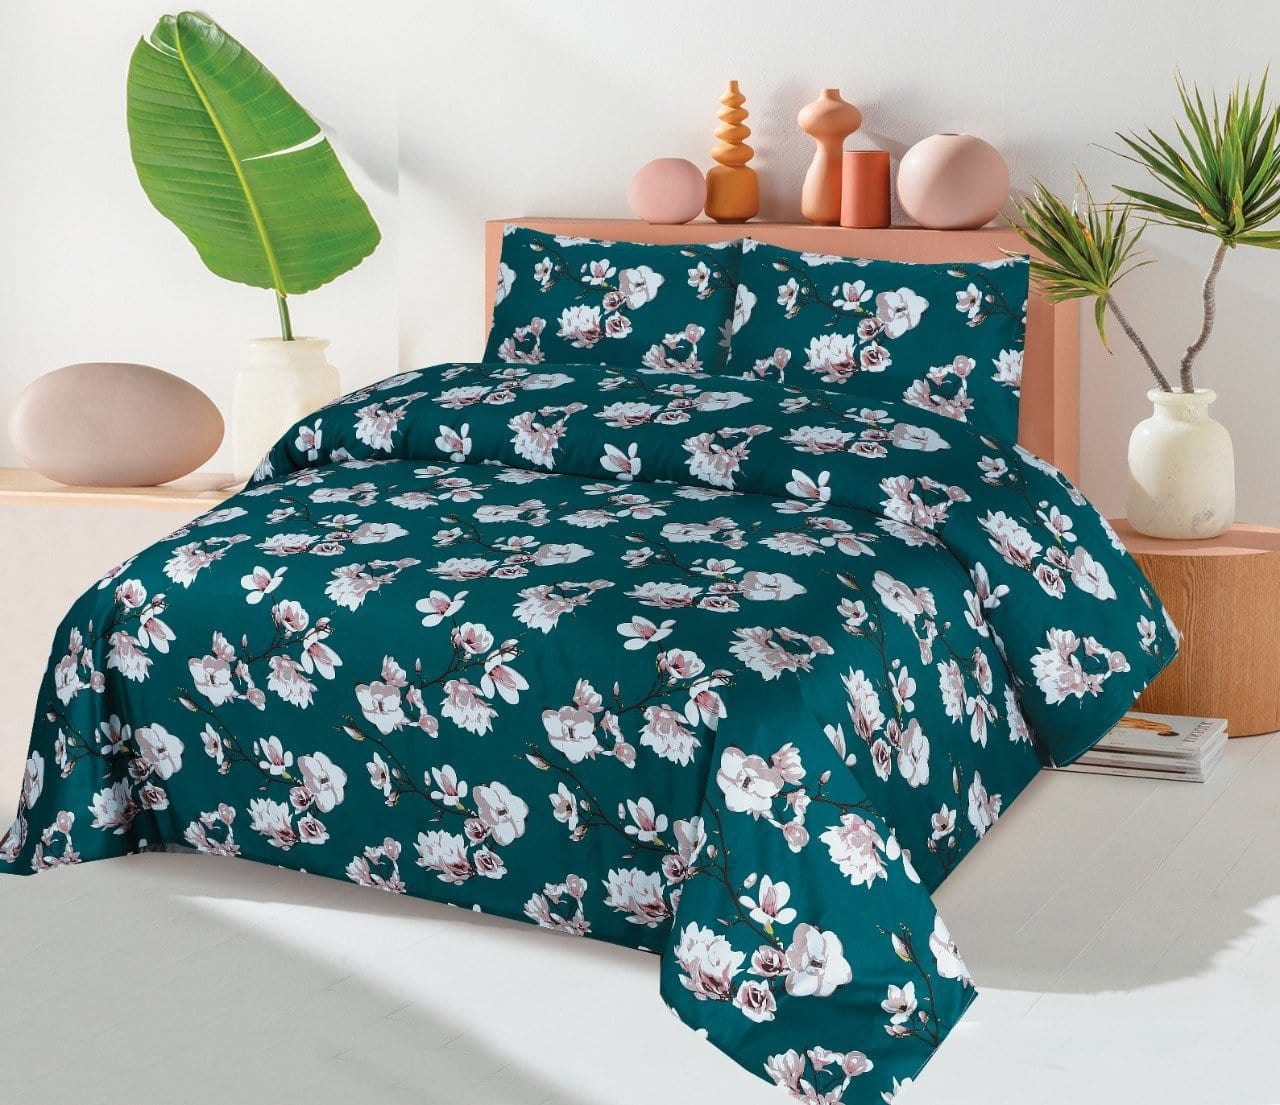 Grace D307-Reactive cotton Satin Quality king size Bedsheet with 2 pillow covers.